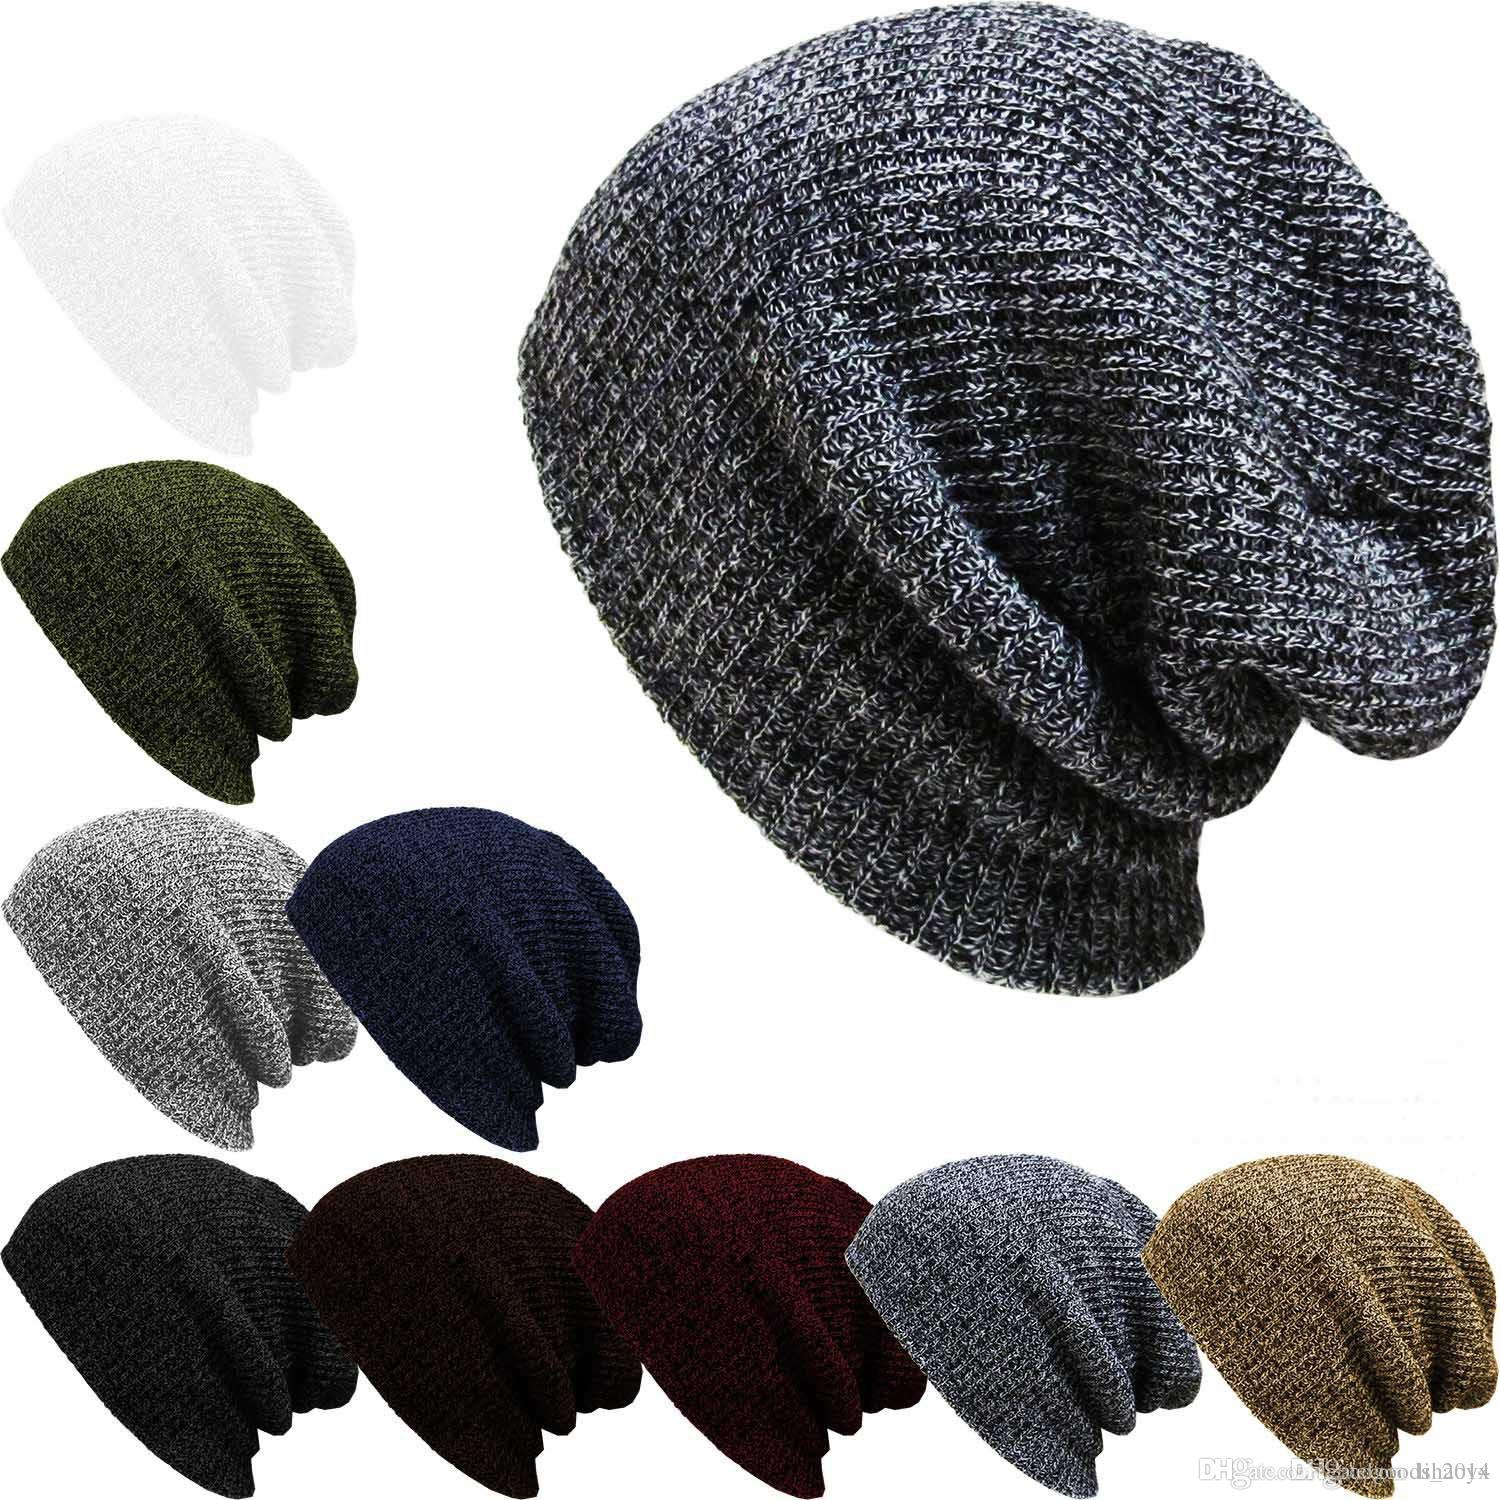 a5770d1e656 Knit Men S Women S Baggy Beanie Oversize Winter Warm Hat Ski Slouchy Chic  Crochet Knitted Cap Skull B274 Cool Hats Cloche Hat From Lihaoyx